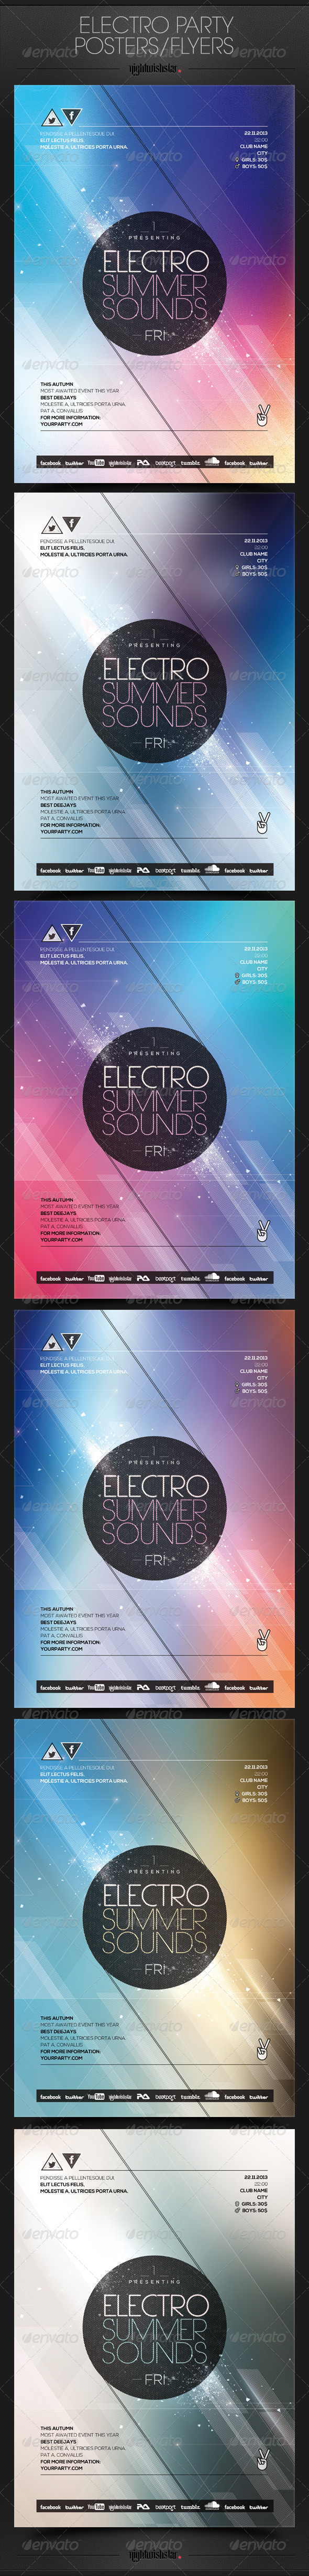 GraphicRiver Electro Party Poster Flyer 6518769